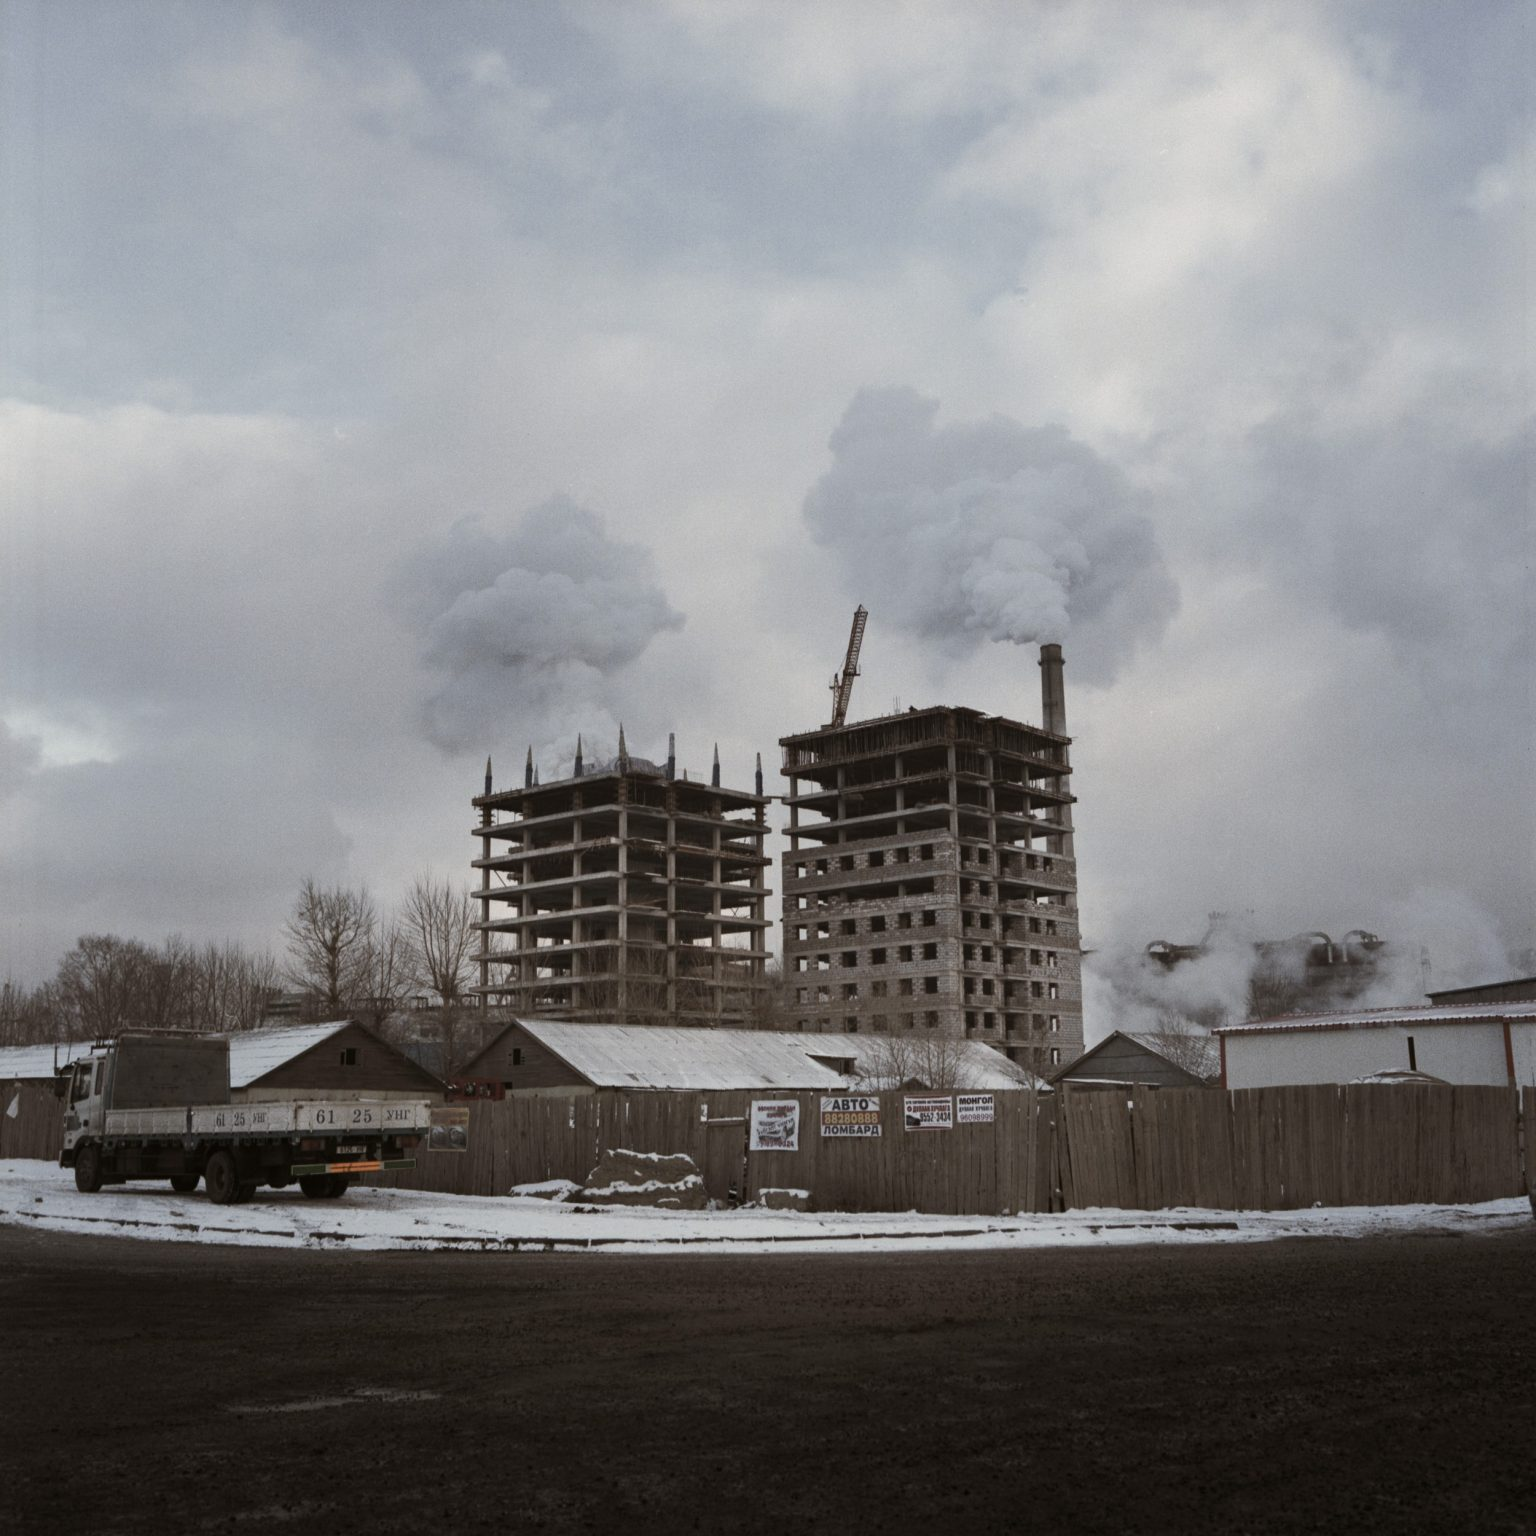 Mongolia, Ulaanbatar, novembre 2013 >< Two buildings under construction near one of the power stations of Ulaanbaatar